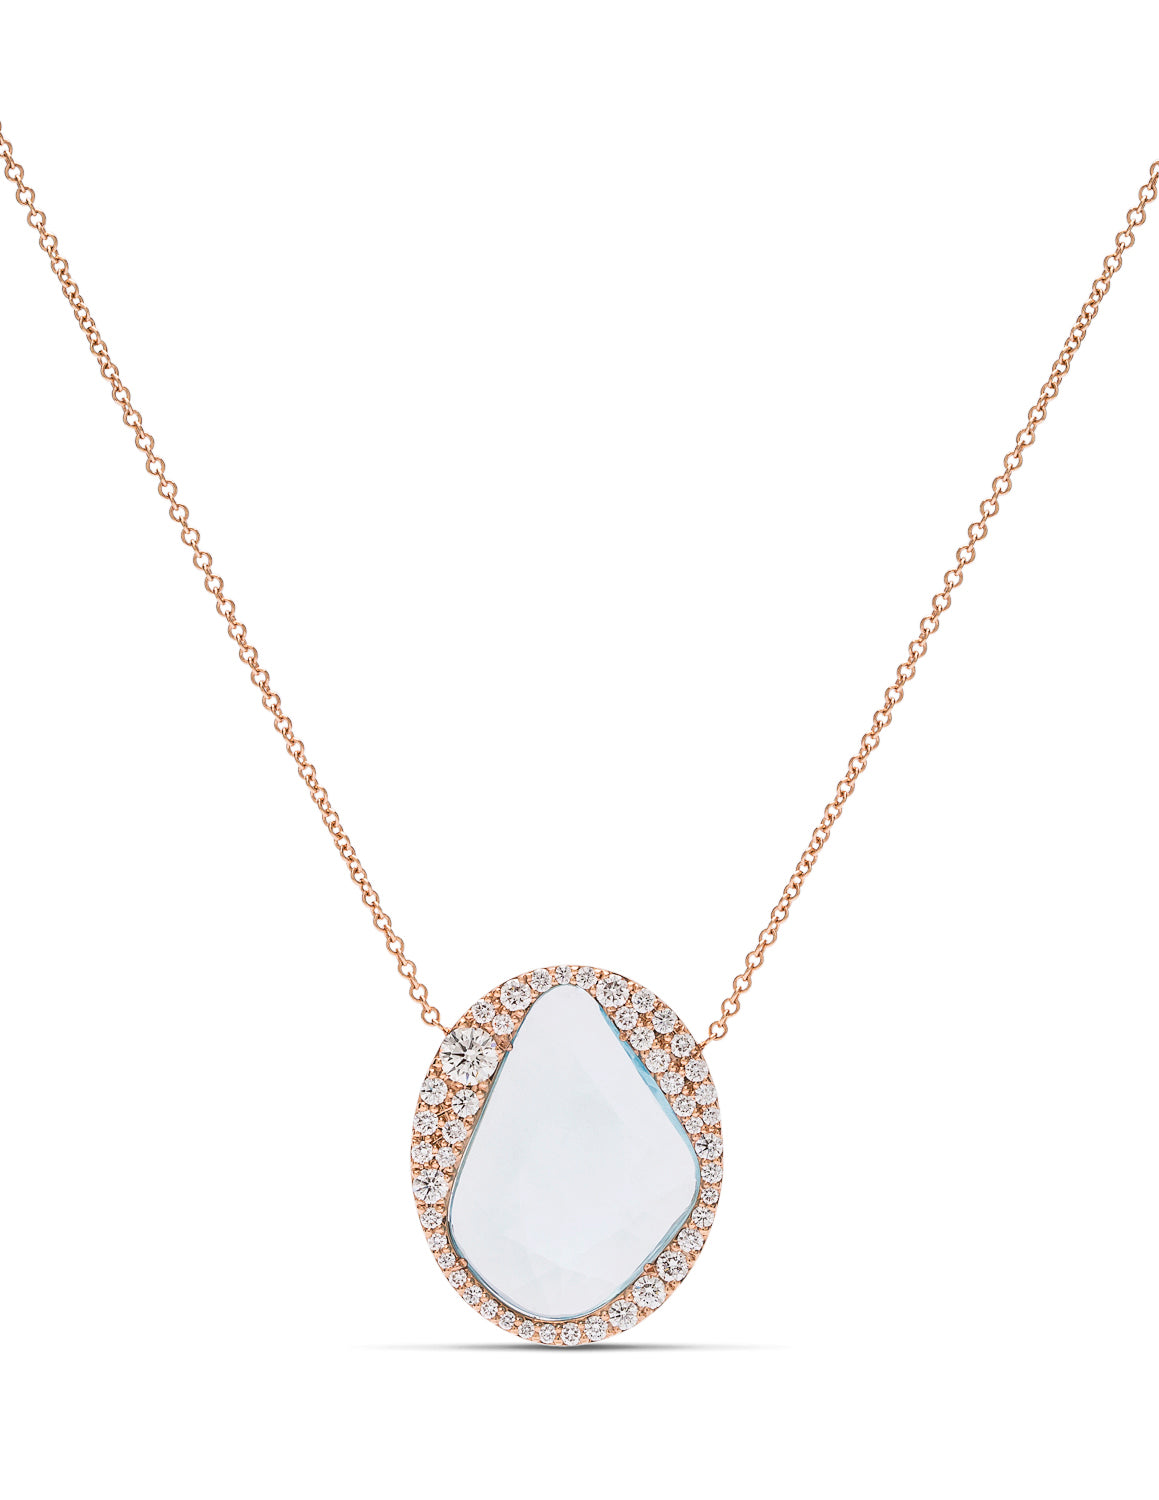 Aquamarine and Diamond Necklace - Charles Koll Jewellers